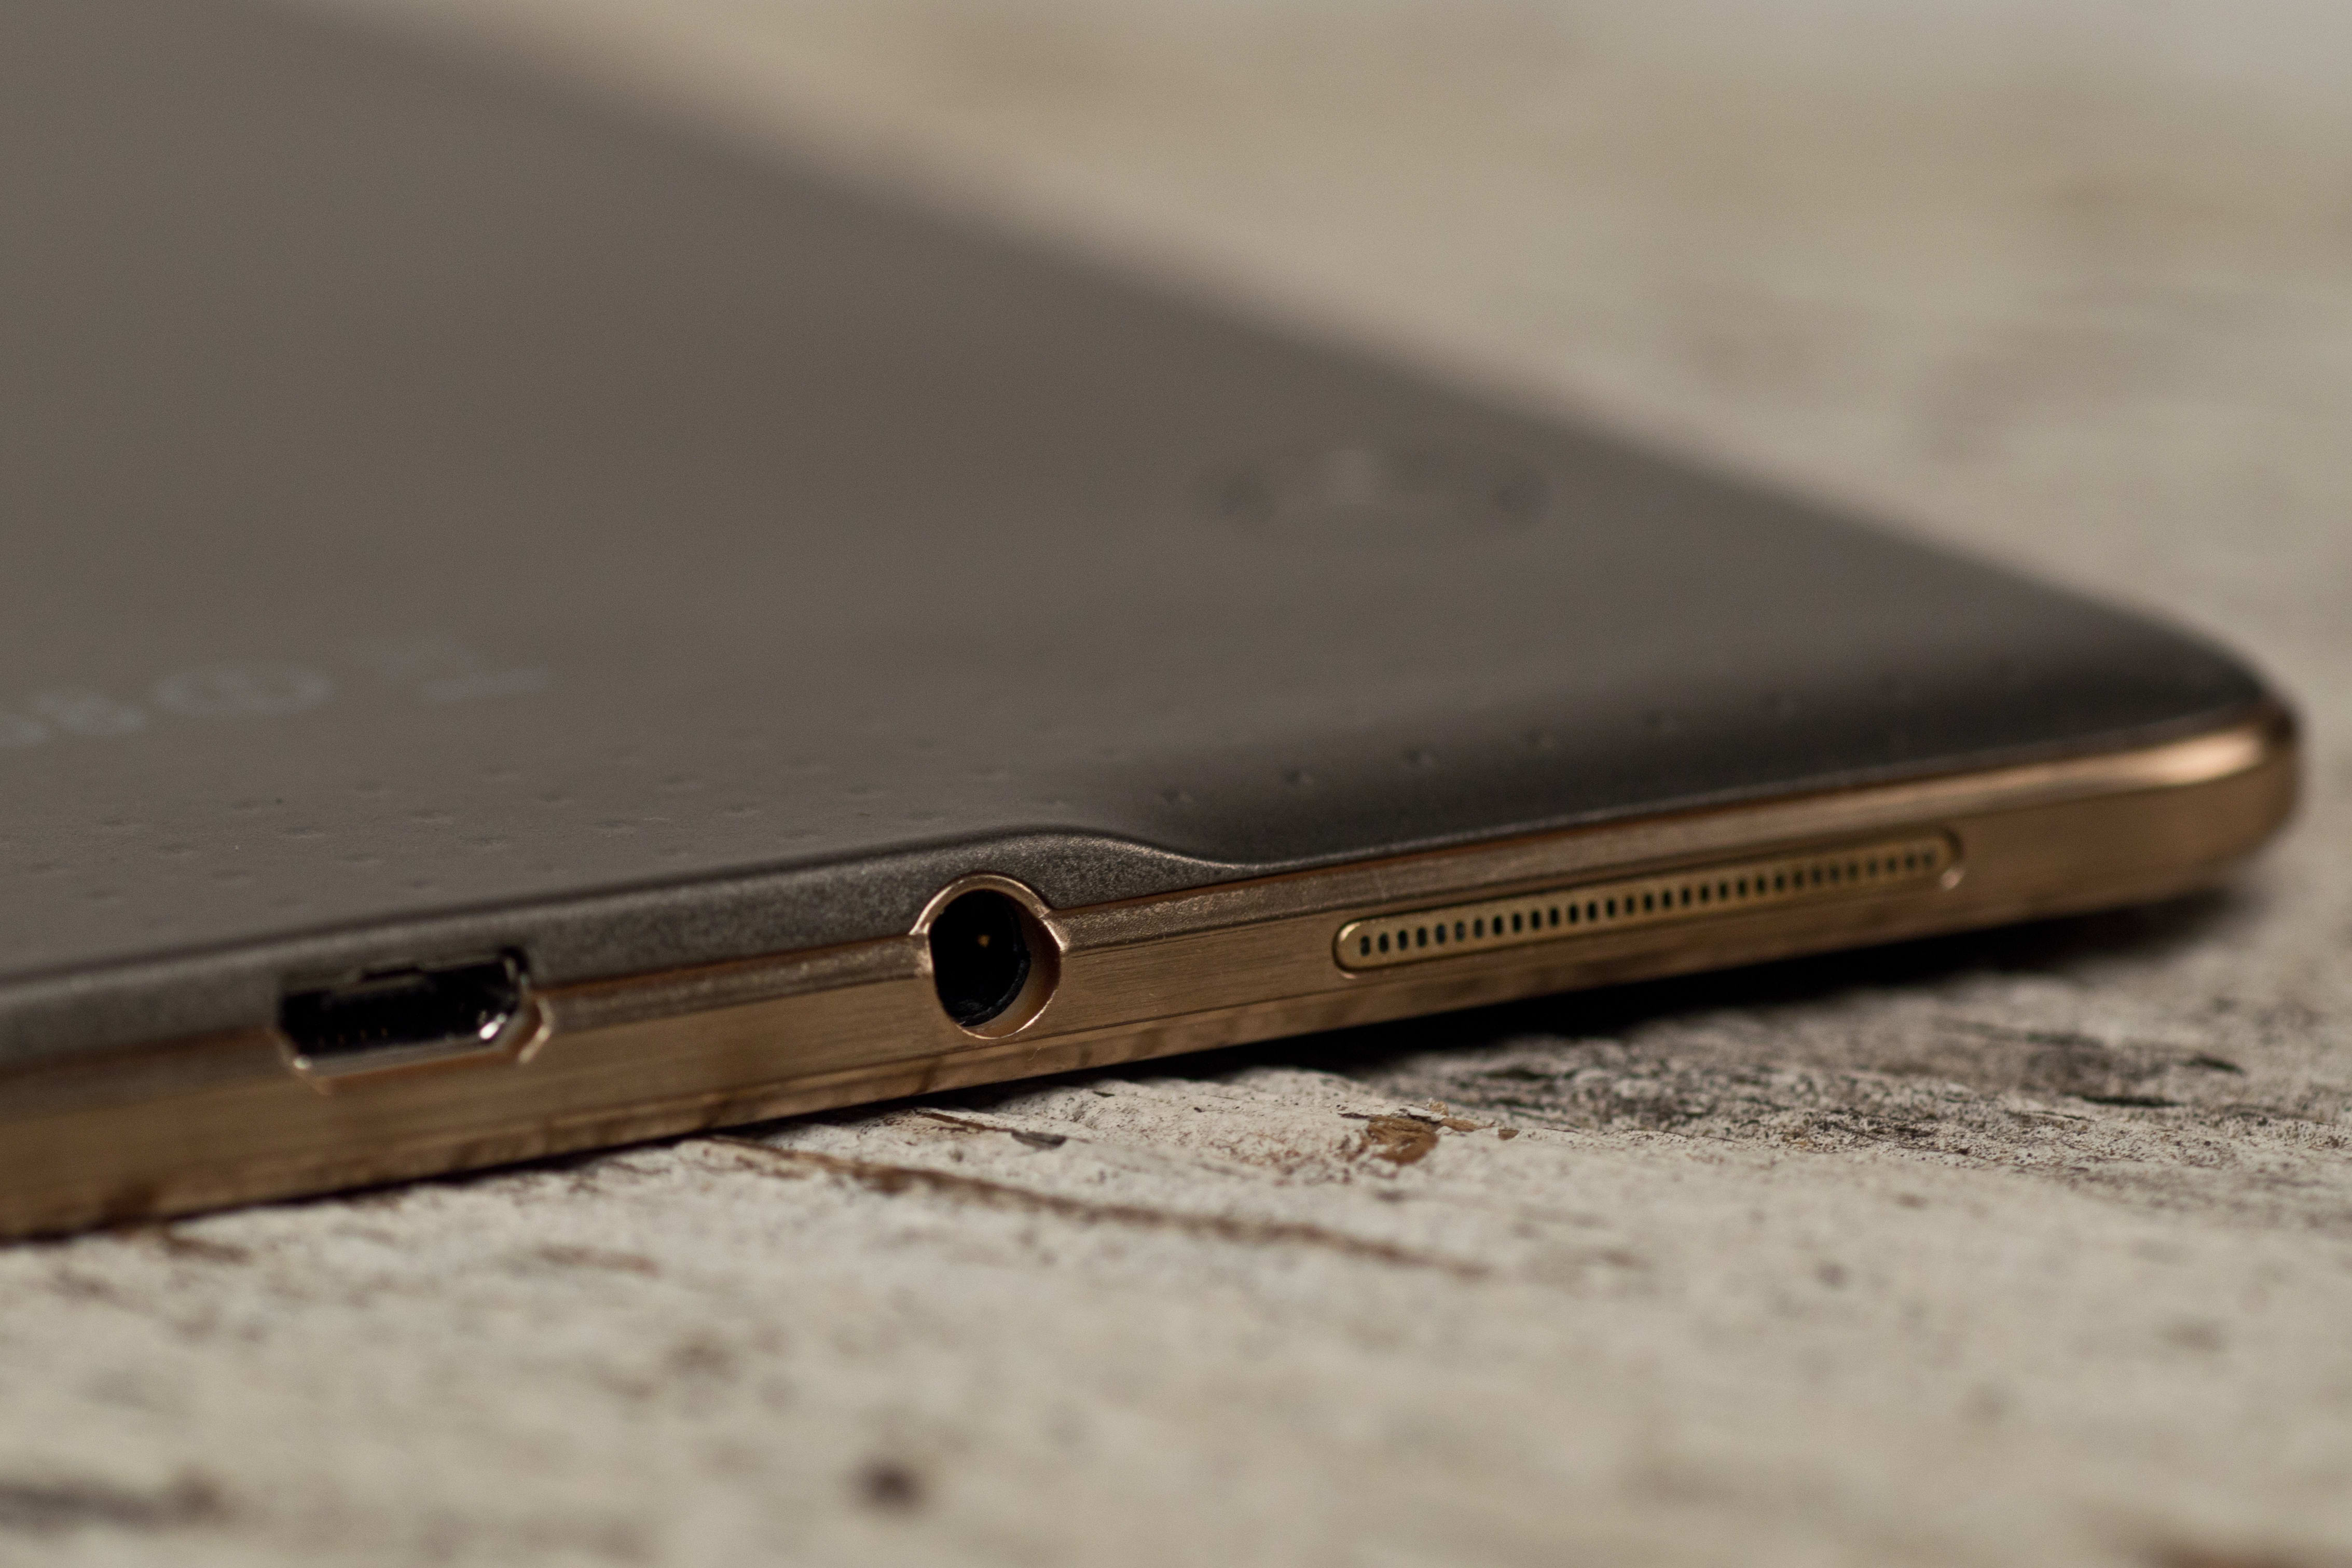 A photograph of the Samsung Galaxy Tab S 8.4's headphone jack.